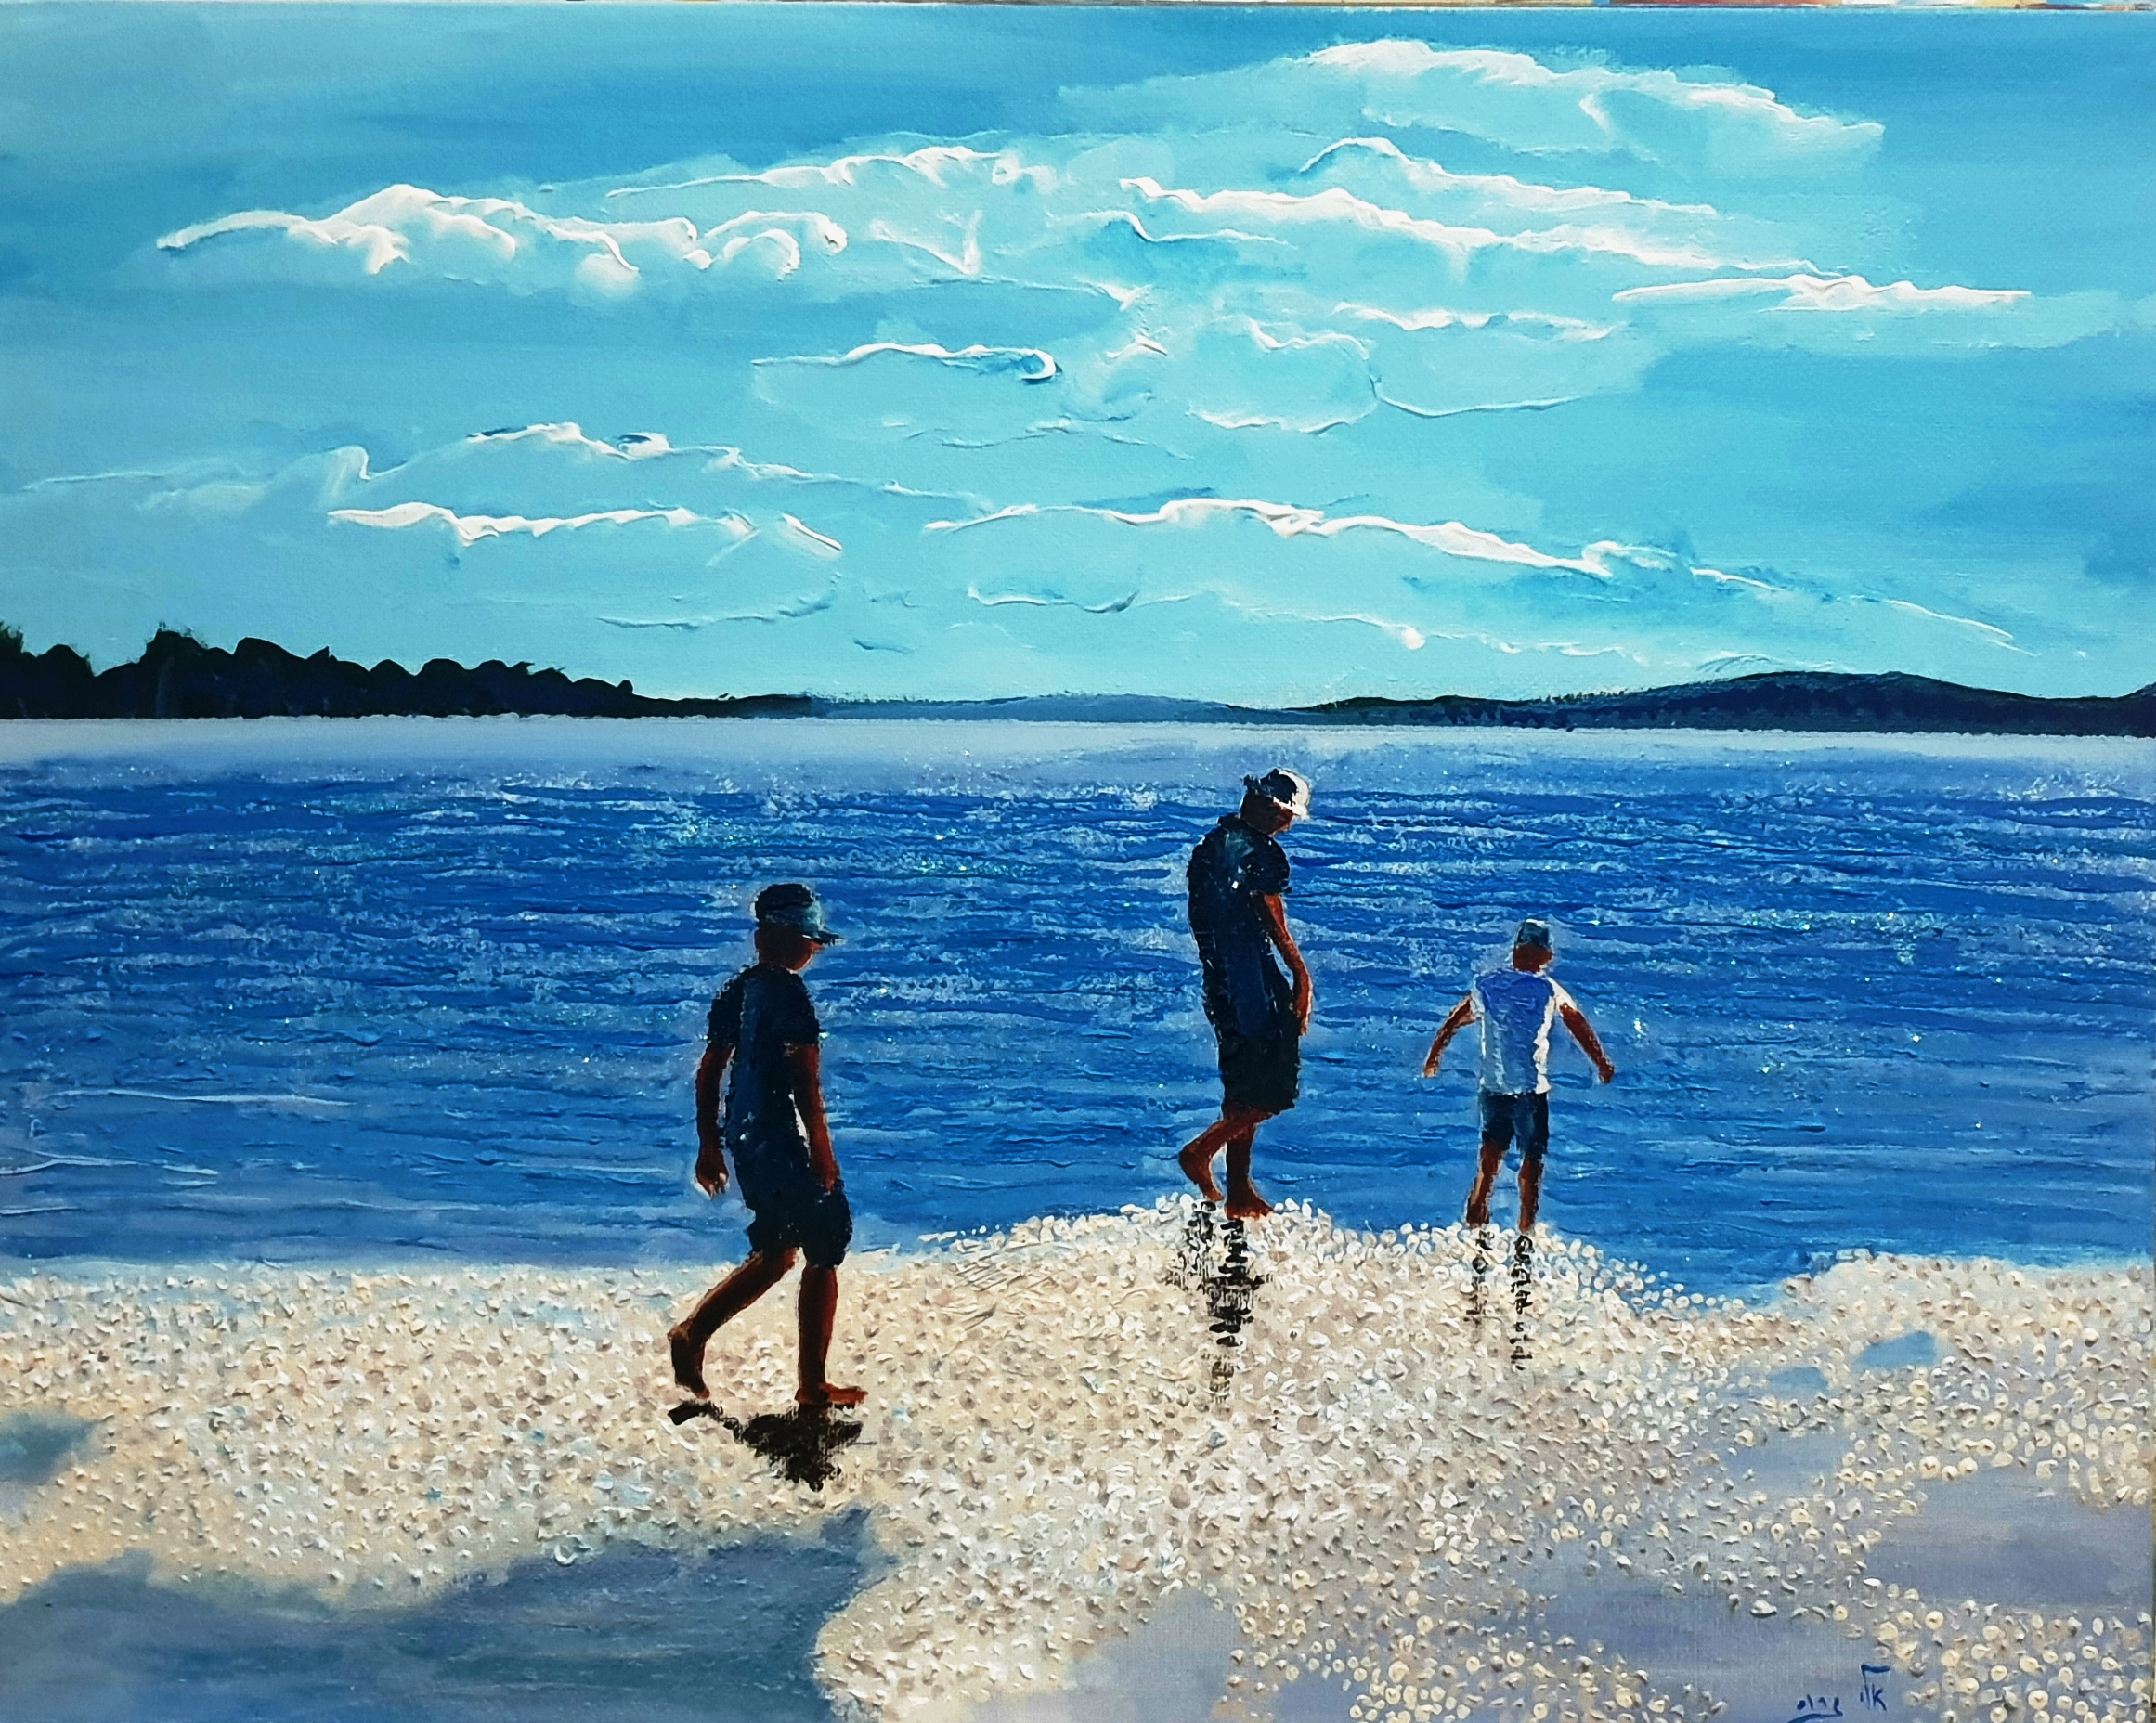 Silhouettes along the beach - Acrylic